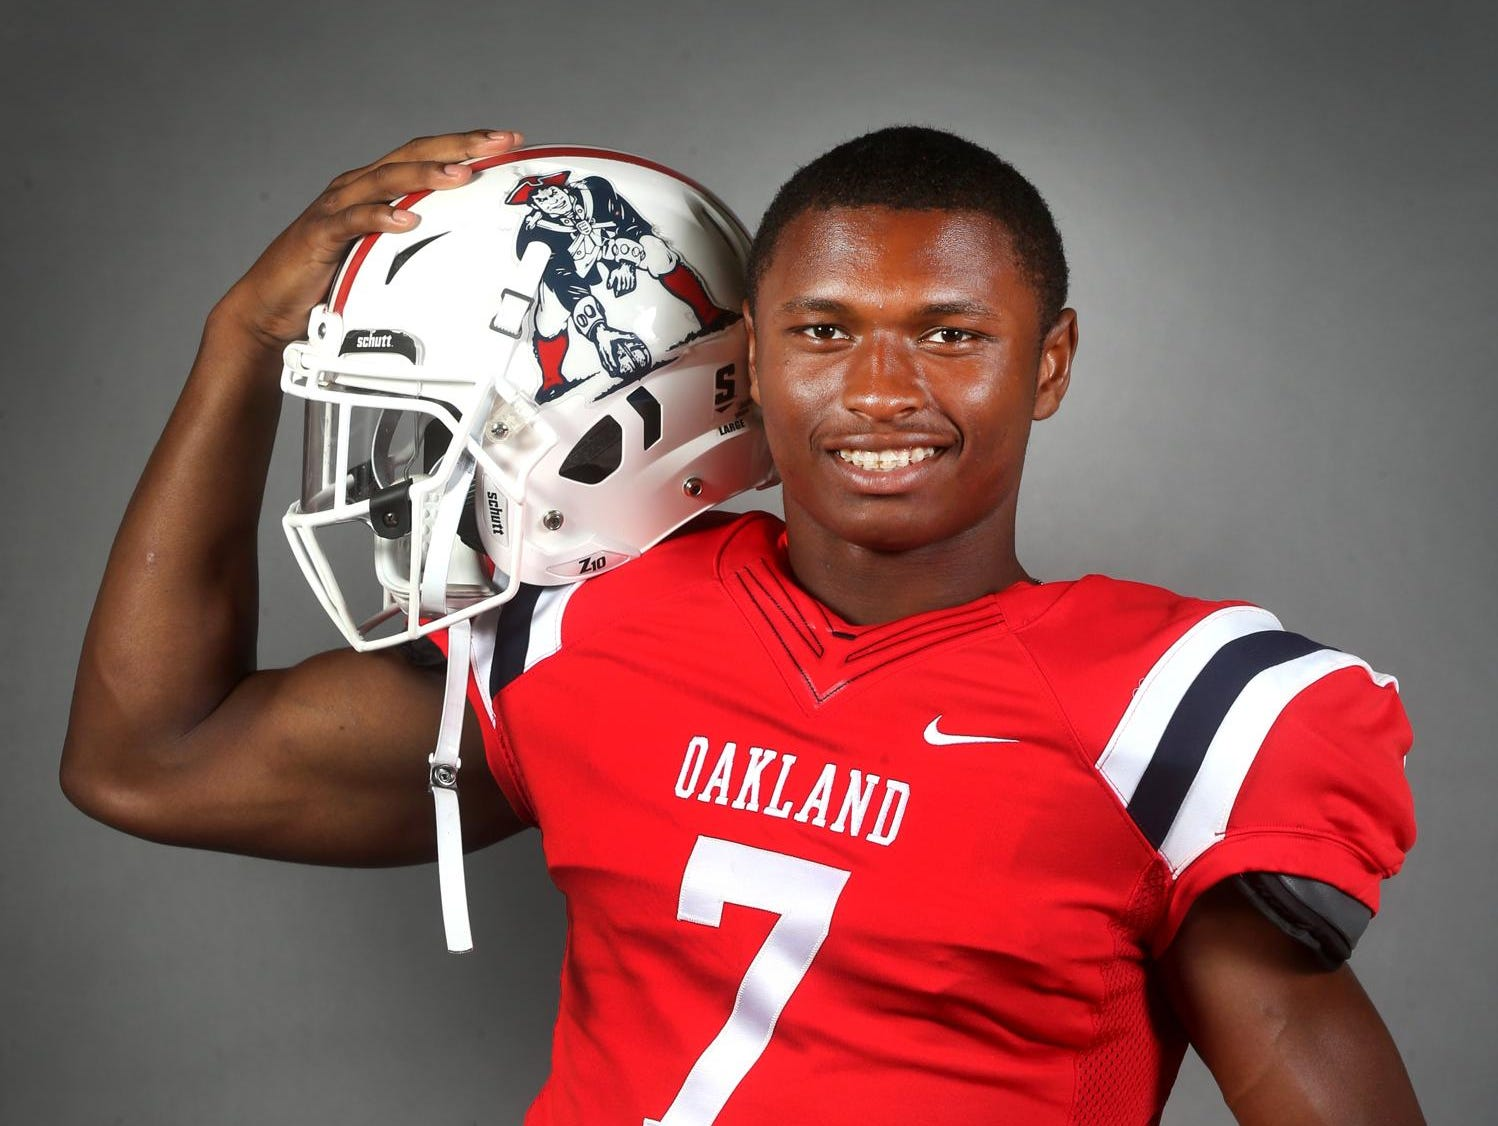 Oakland High School star JaCoby Stevens is the Midstate's top college football prospect.